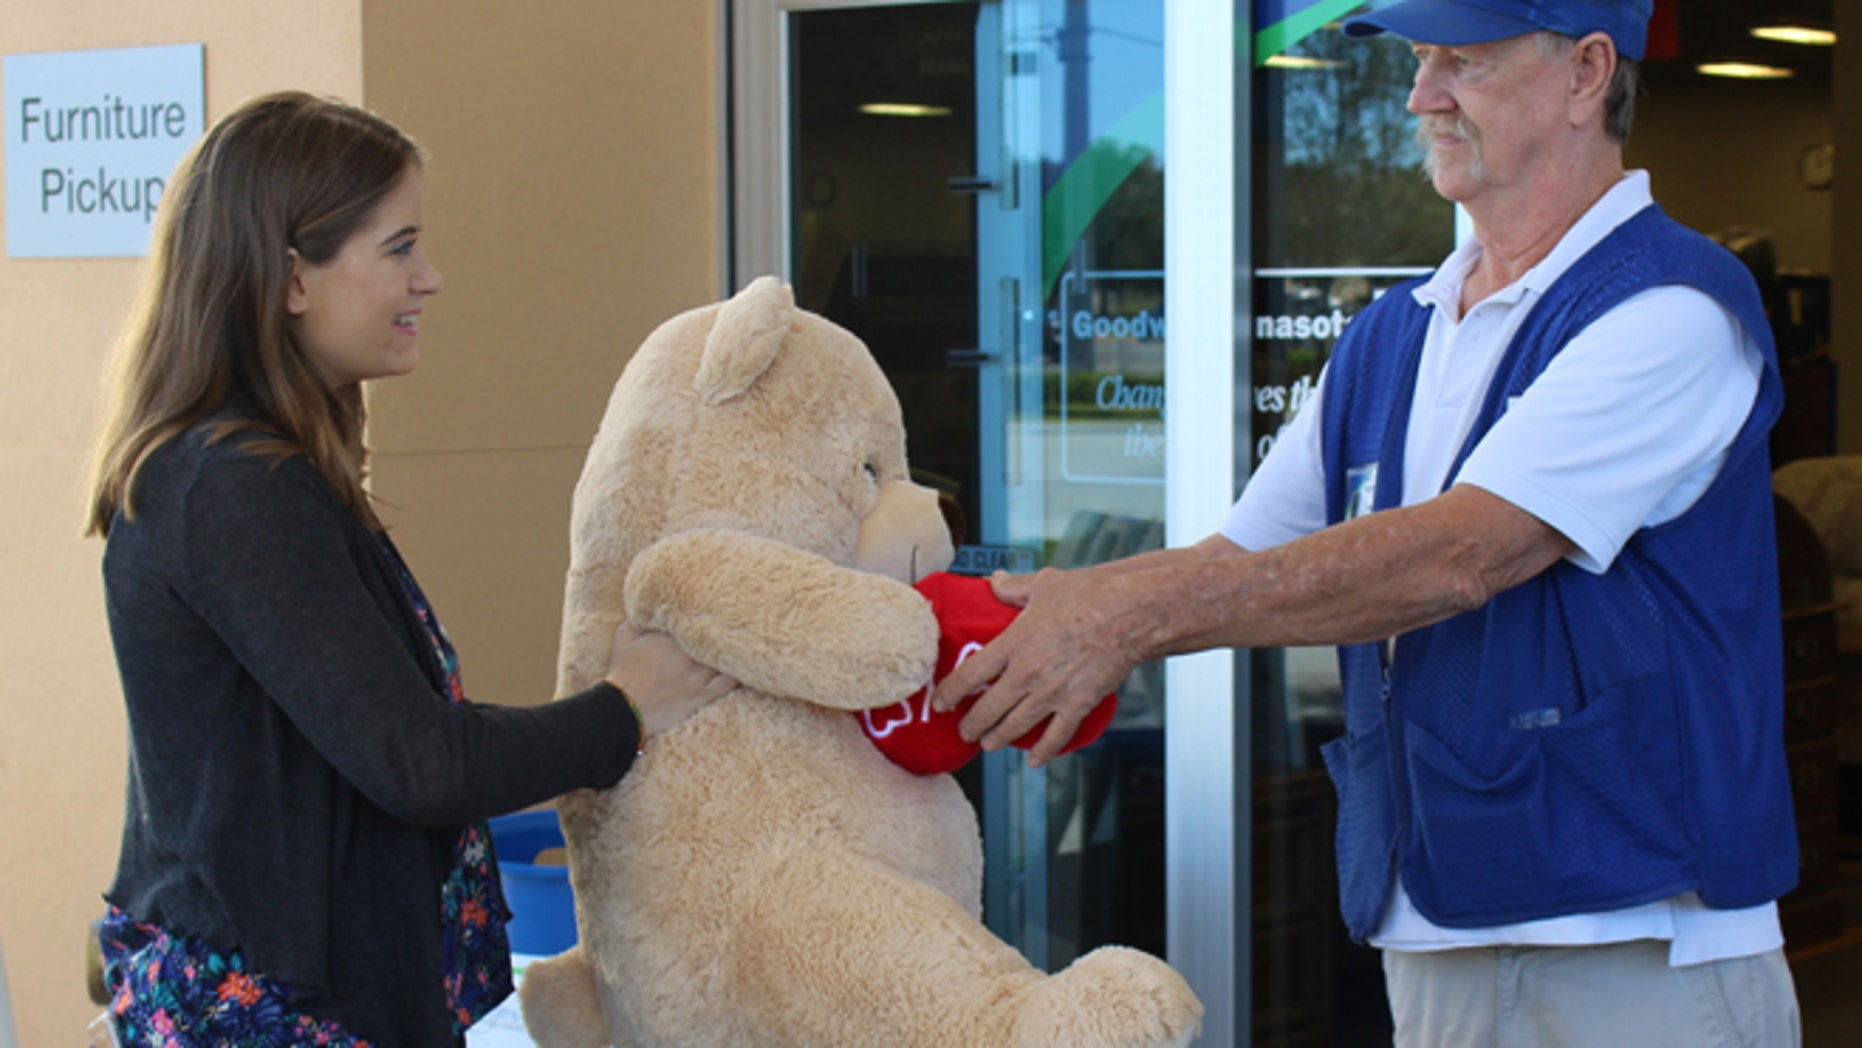 Amanda Emory drops off a giant Valentine's Day teddy bear from her ex-boyfriend to Goodwill Manasota's Tom Lohr. (Goodwill Manasota)